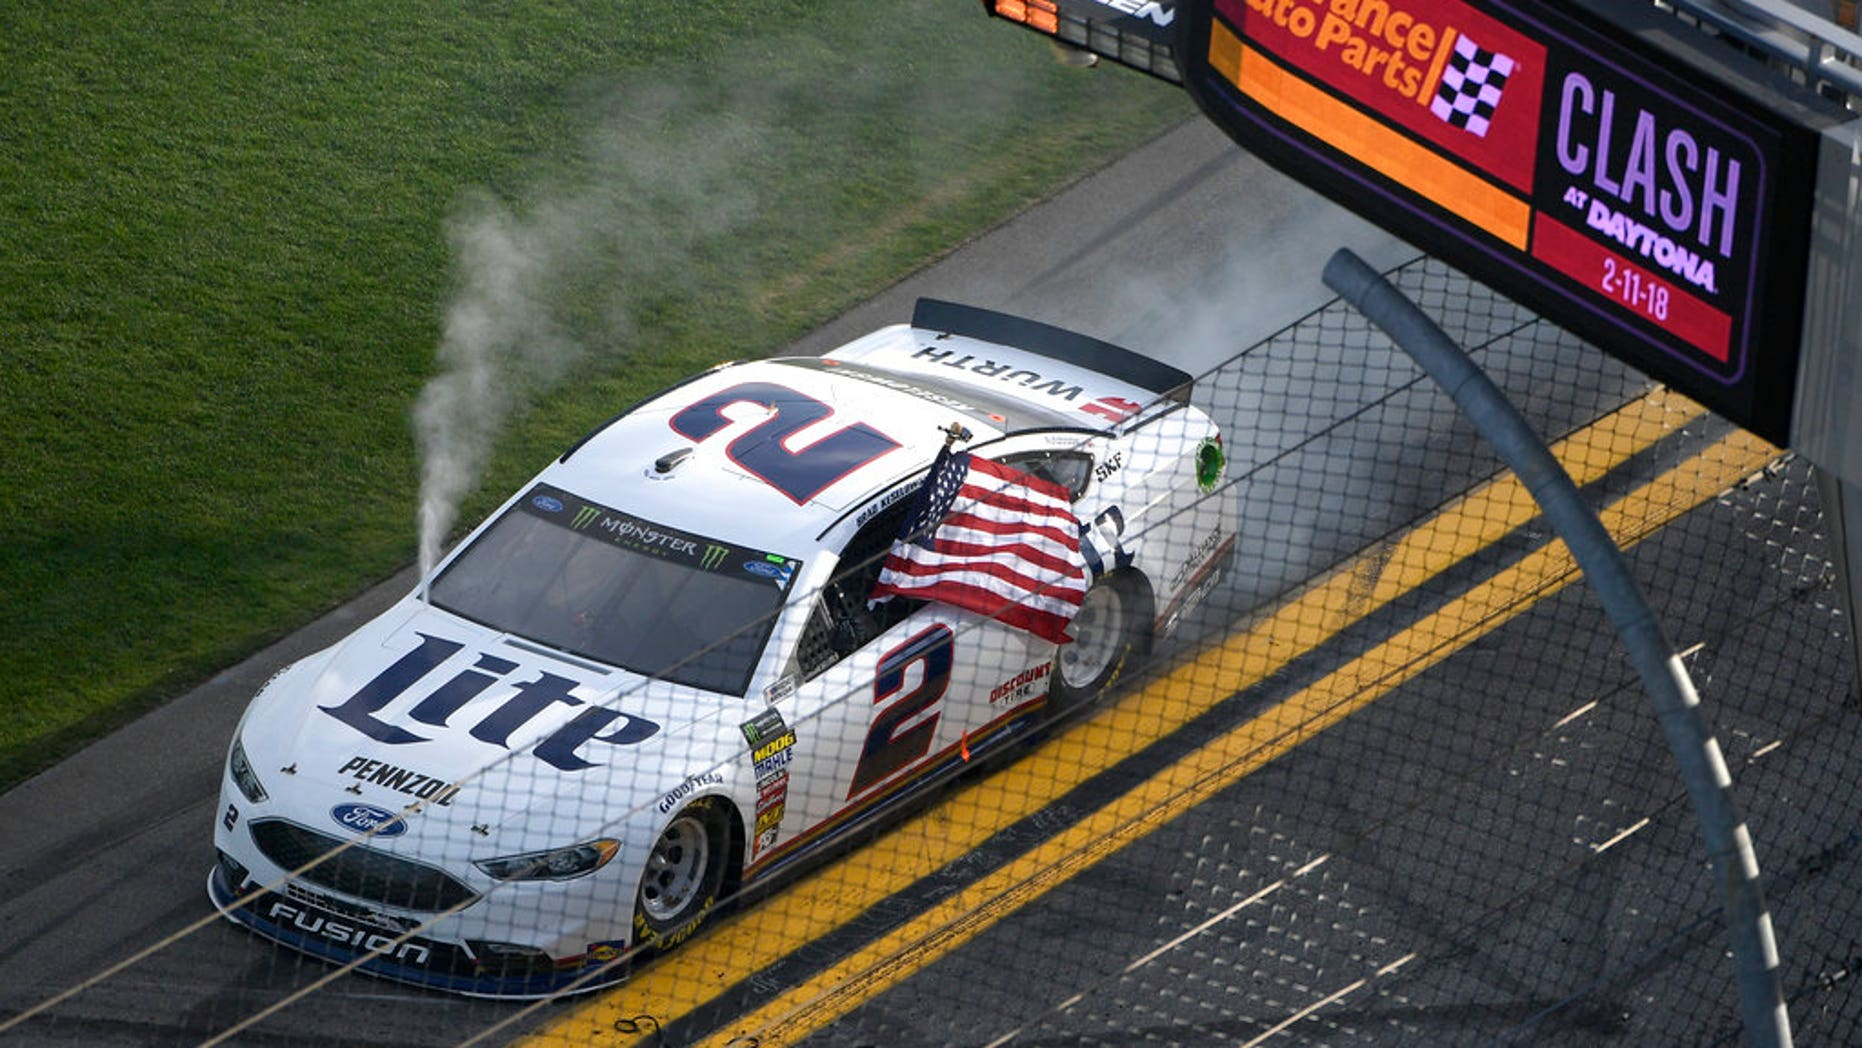 Brad Keselowski (2) carries a United States flag past the finish line after winning the NASCAR Clash auto race at Daytona International Speedway Sunday, Feb. 11, 2018, in Daytona Beach, Fla. (AP Photo/Phelan M. Ebenhack)